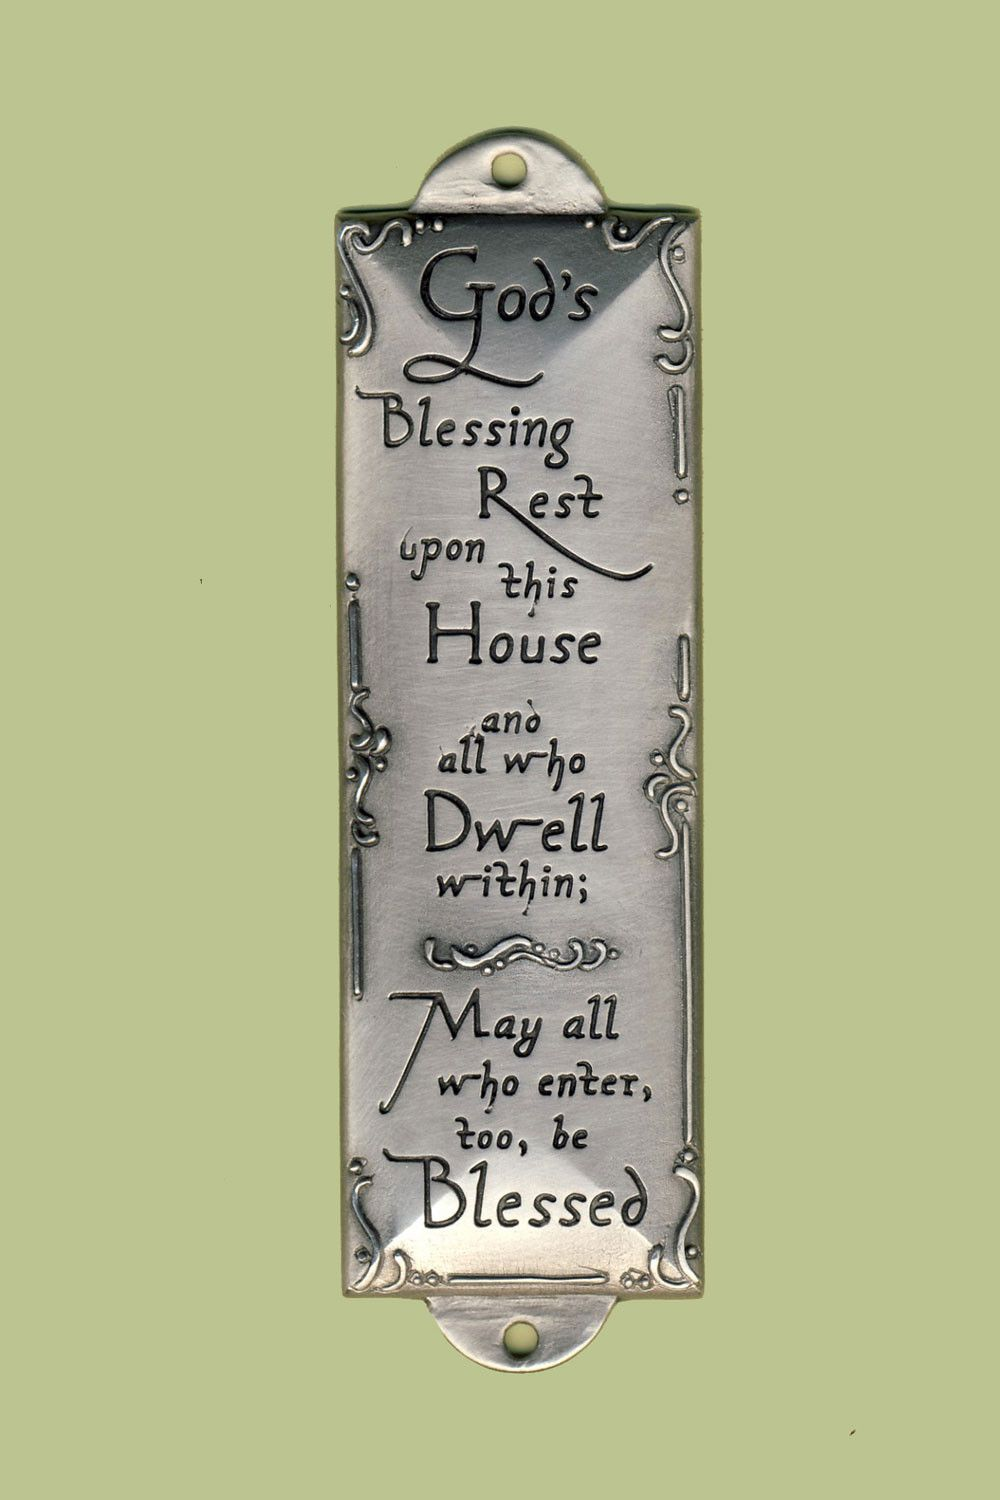 Room Blessing | Great ideas | Pinterest | Blessings, Room and House